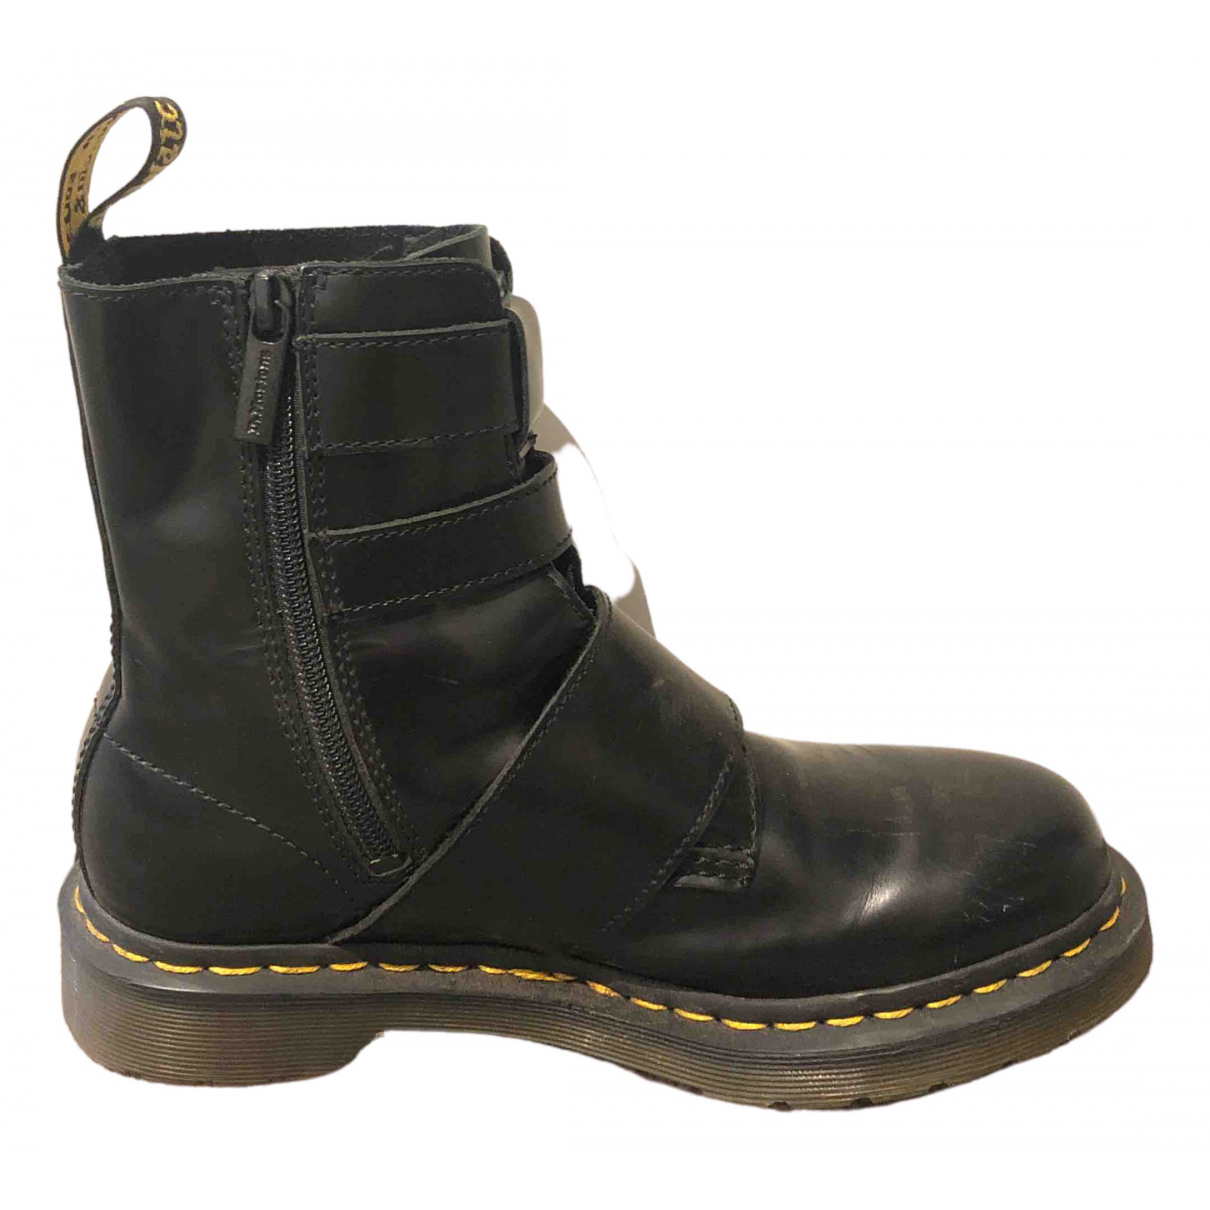 Dr. Martens \N Black Leather Boots for Women 37 EU